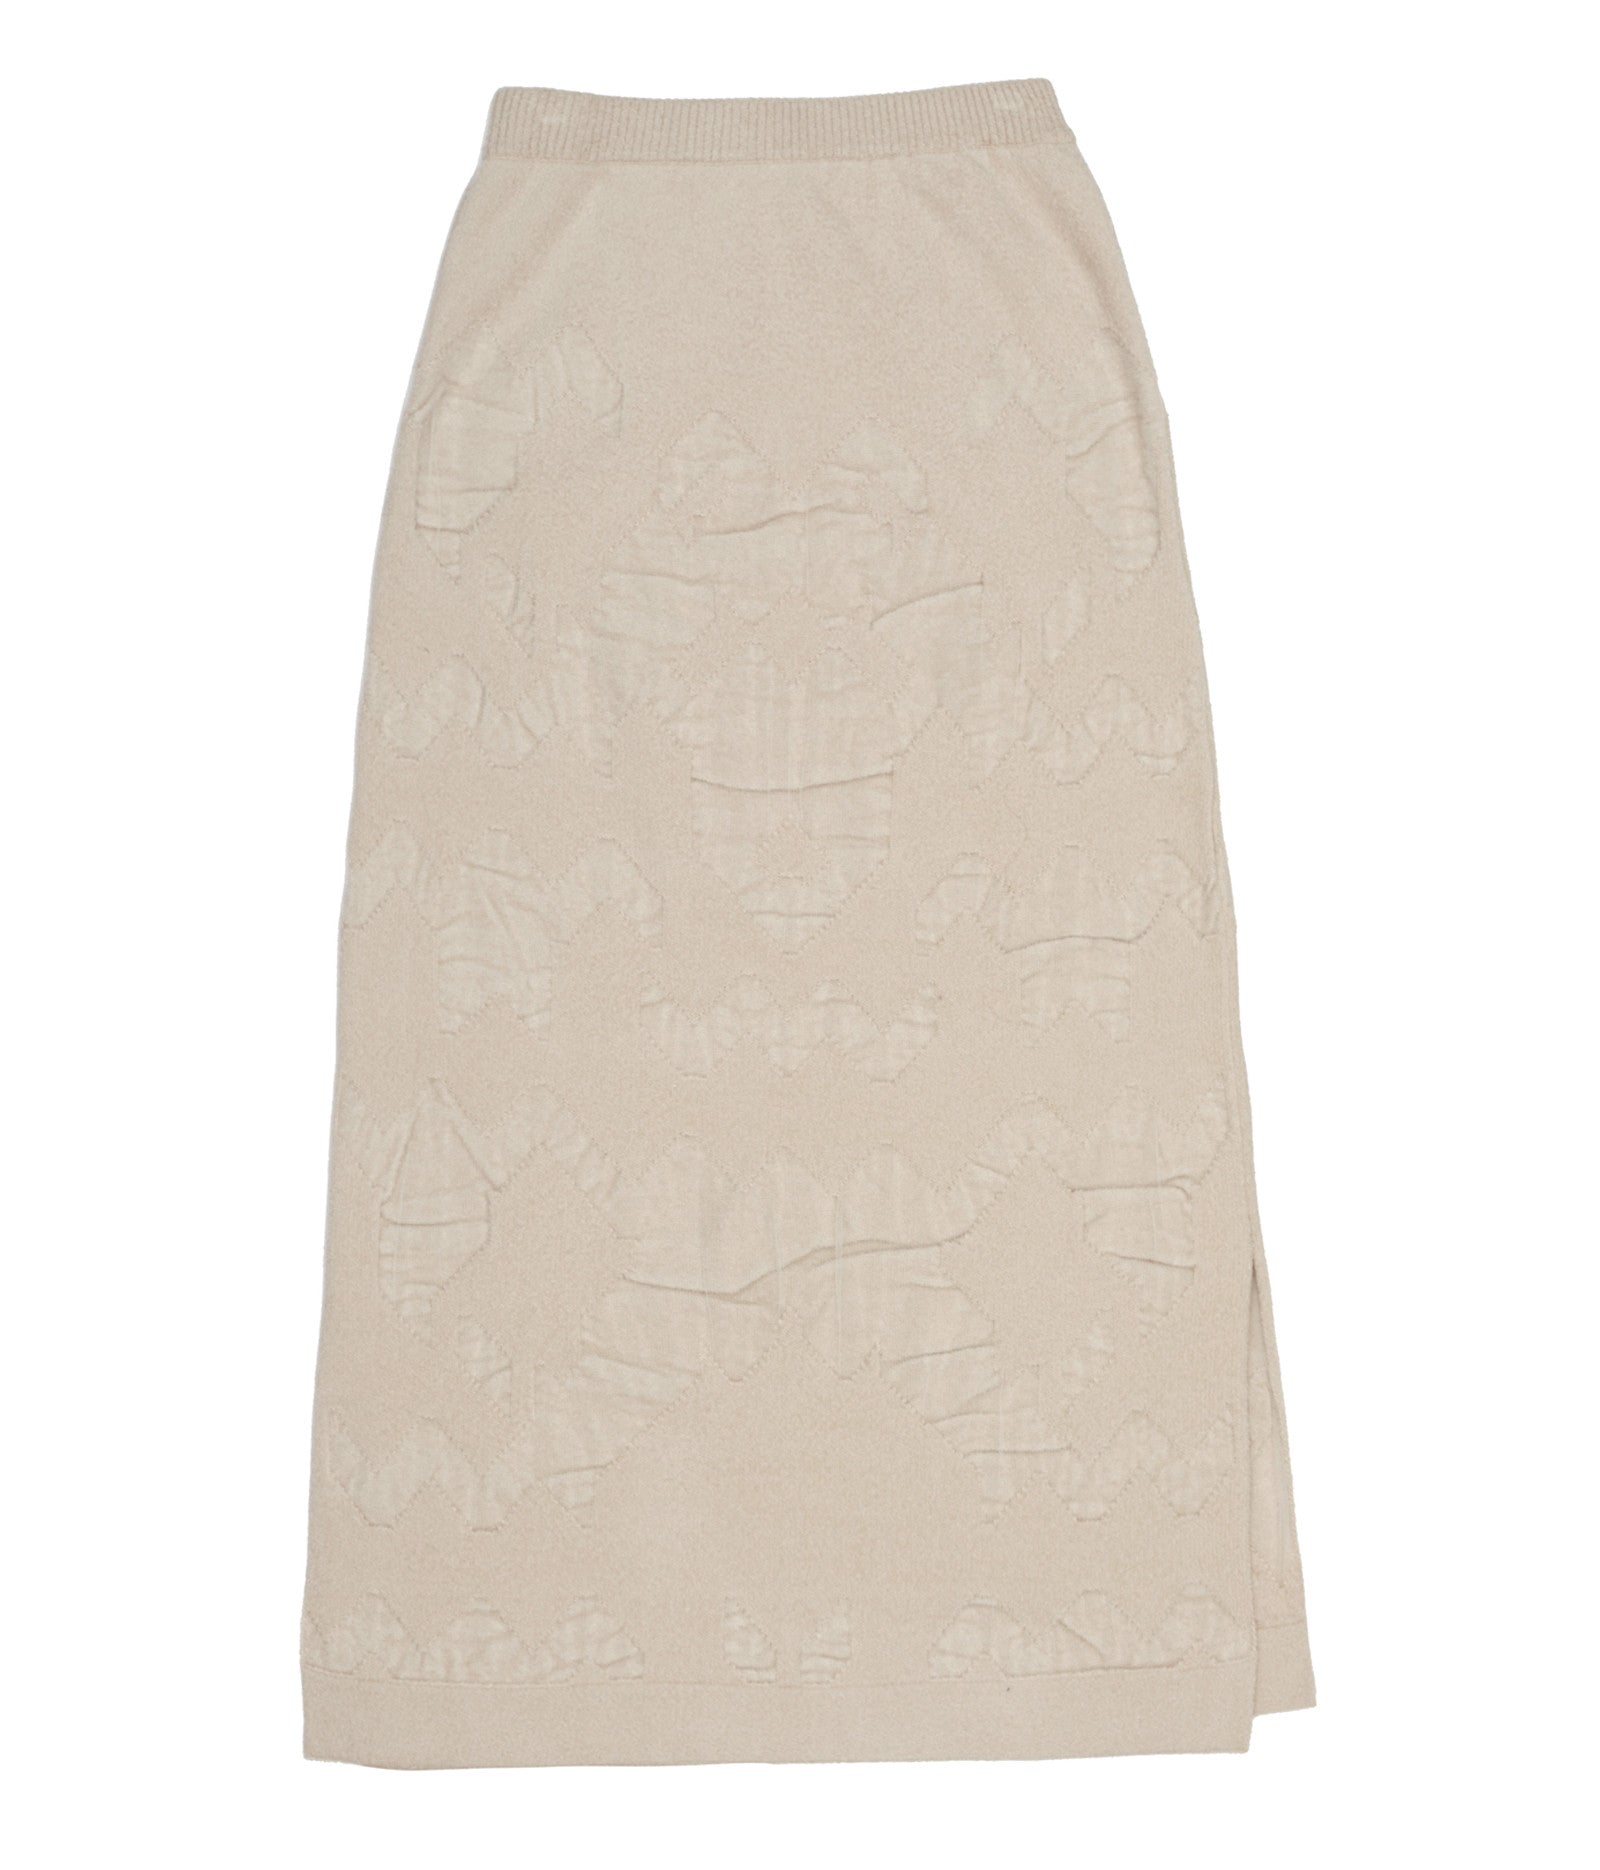 Cream Midi Pencil Skirt